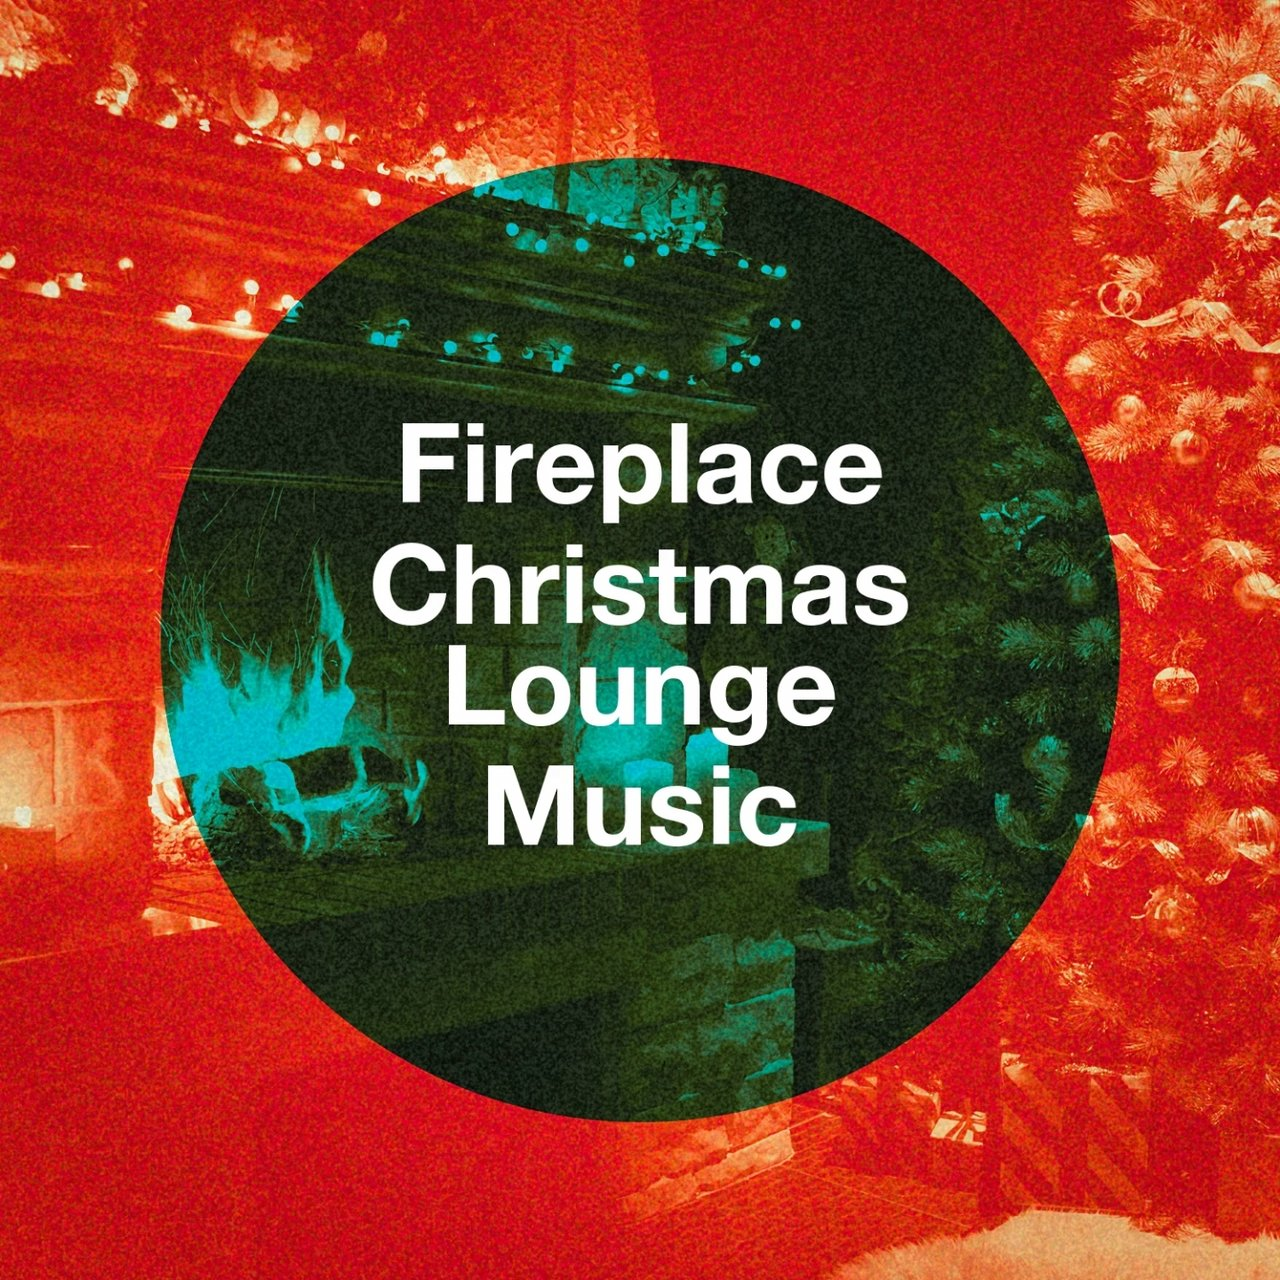 Fireplace Christmas Music.Listen To Fireplace Christmas Lounge Music By Christmas